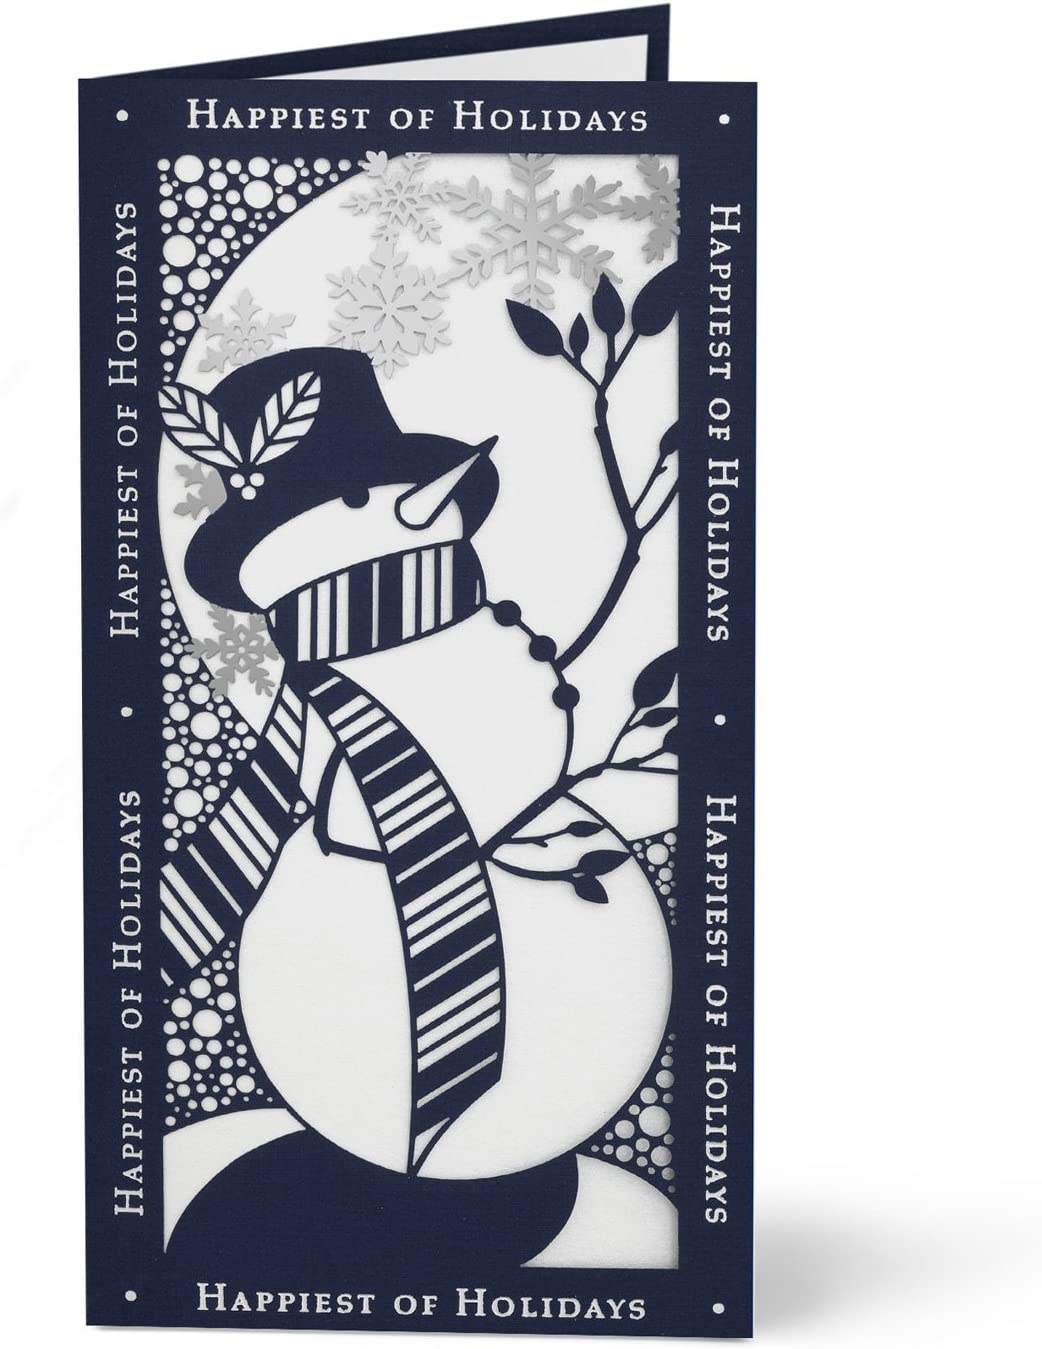 Laser Die-Cut Snowman Hallmark Business Holiday Cards for Customers Pack of 25 Greeting Cards